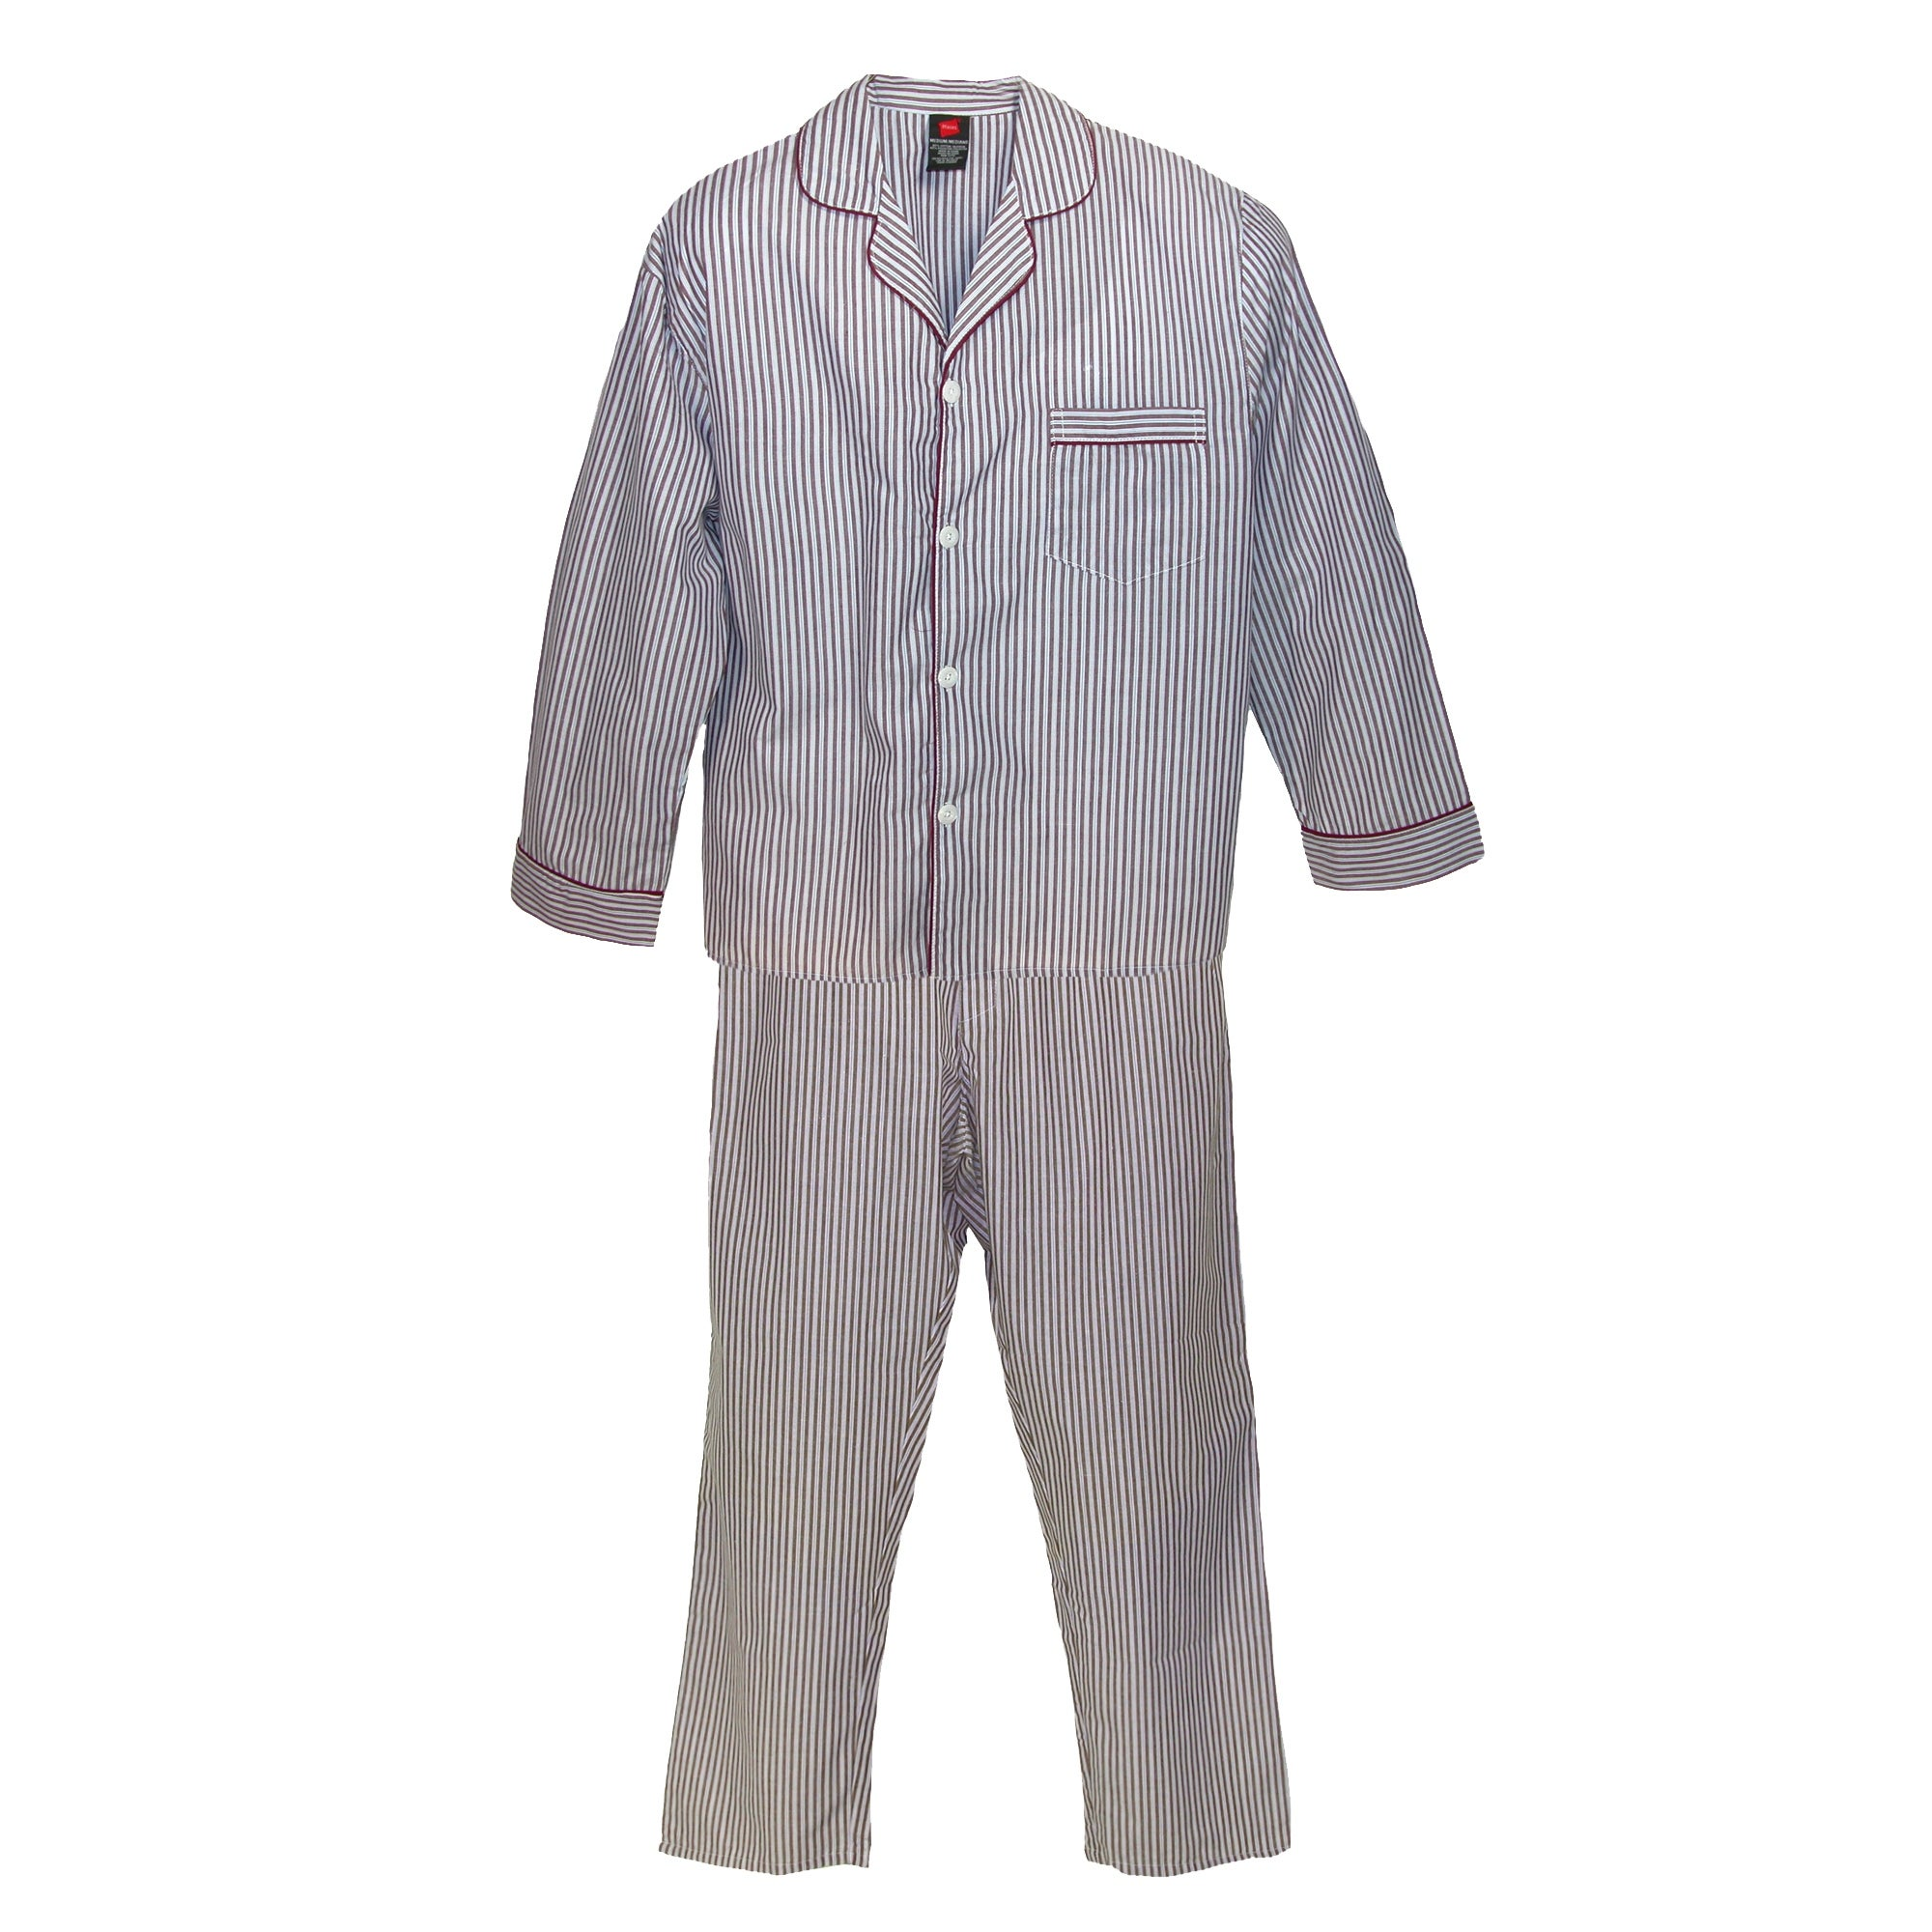 a5313aab816b2 Shop Hanes Men's Big & Tall Broadcloth Long Sleeve Pajama Set - Free  Shipping On Orders Over $45 - Overstock - 14295077